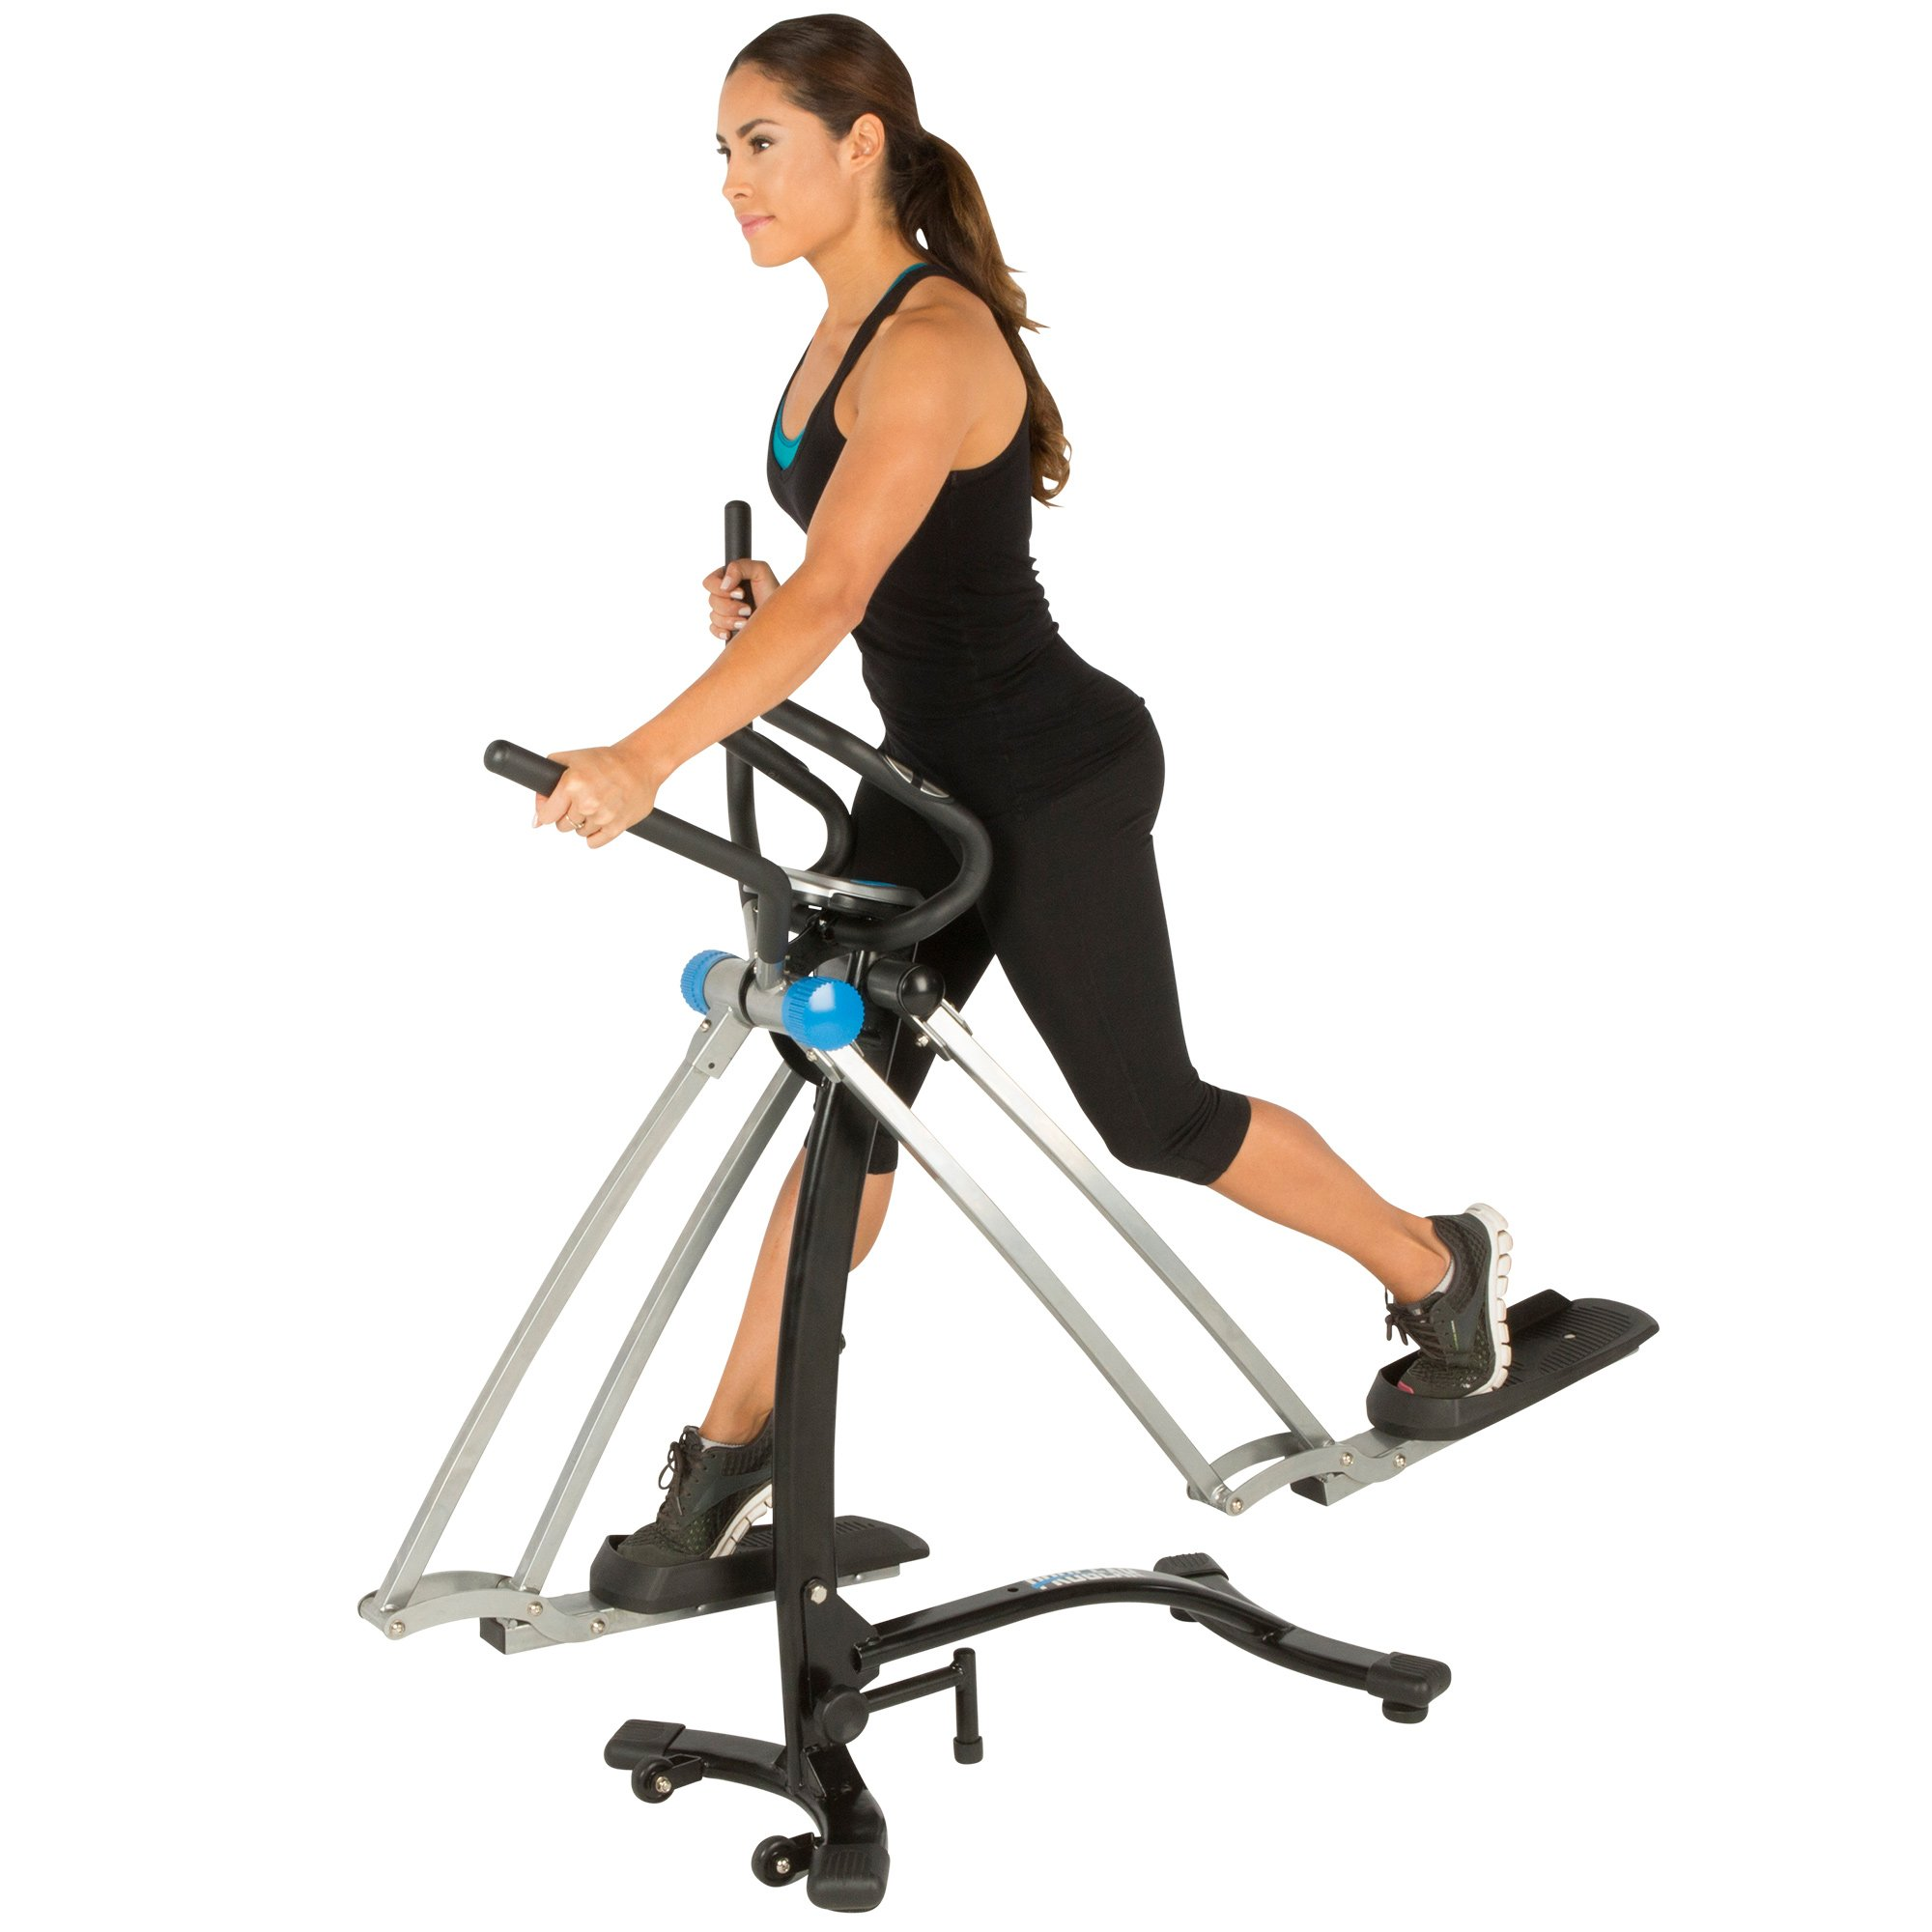 PROGEAR Dual Action 360 Multi Direction 36'' Stride Air Walker LS with Heart Pulse Sensors by ProGear (Image #1)